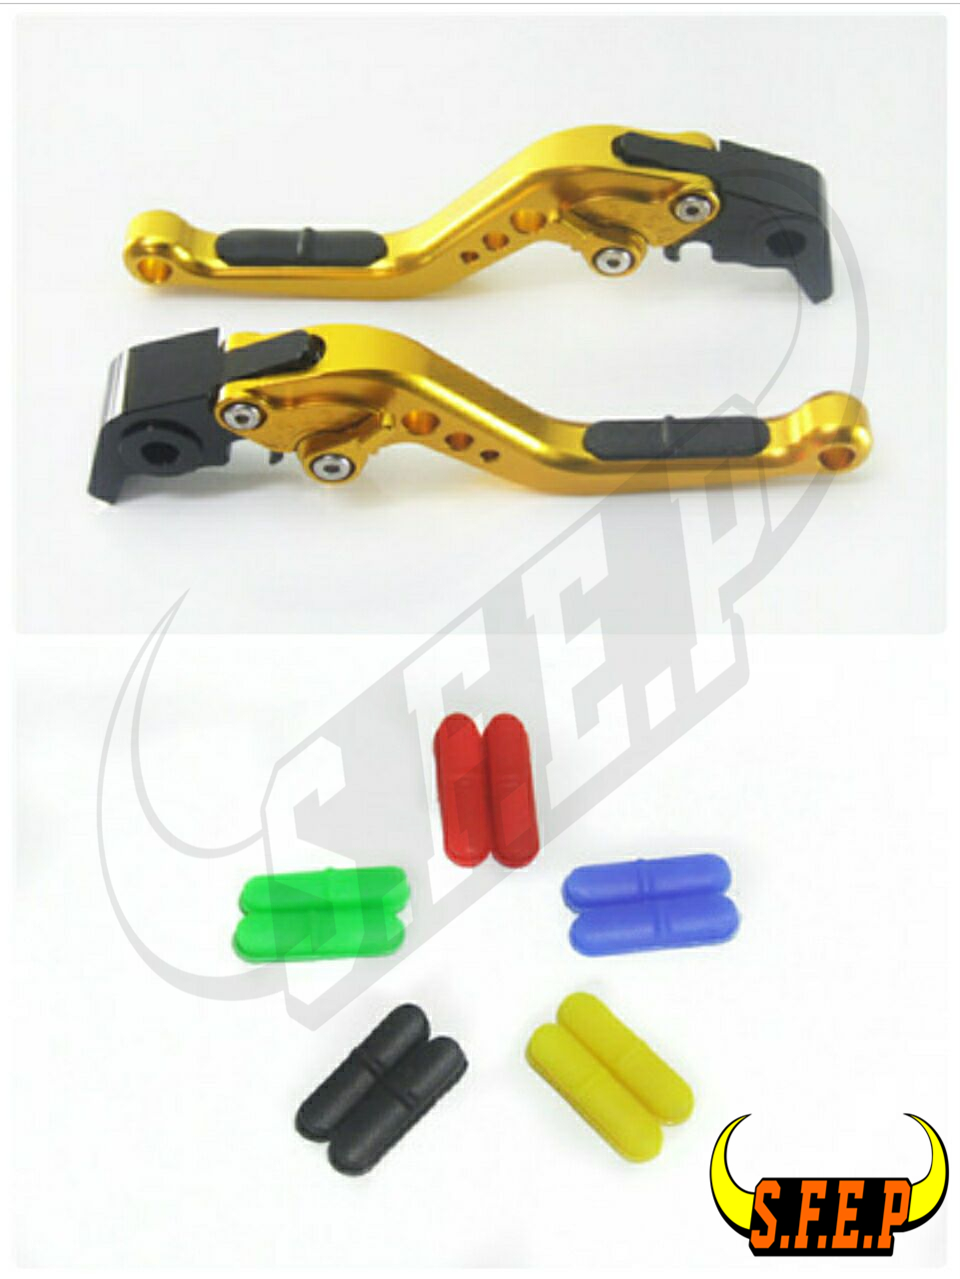 CNC Adjustable Motorcycle Brake and Clutch Levers with Anti-Slip For Yamaha R6S EUROPE VERSION 2006-2007 bxmoto adjustable brake clutch levers set for yamaha fz1 fazer 2001 2005 2006 2015 motorcycle cnc aluminum brake levers protect